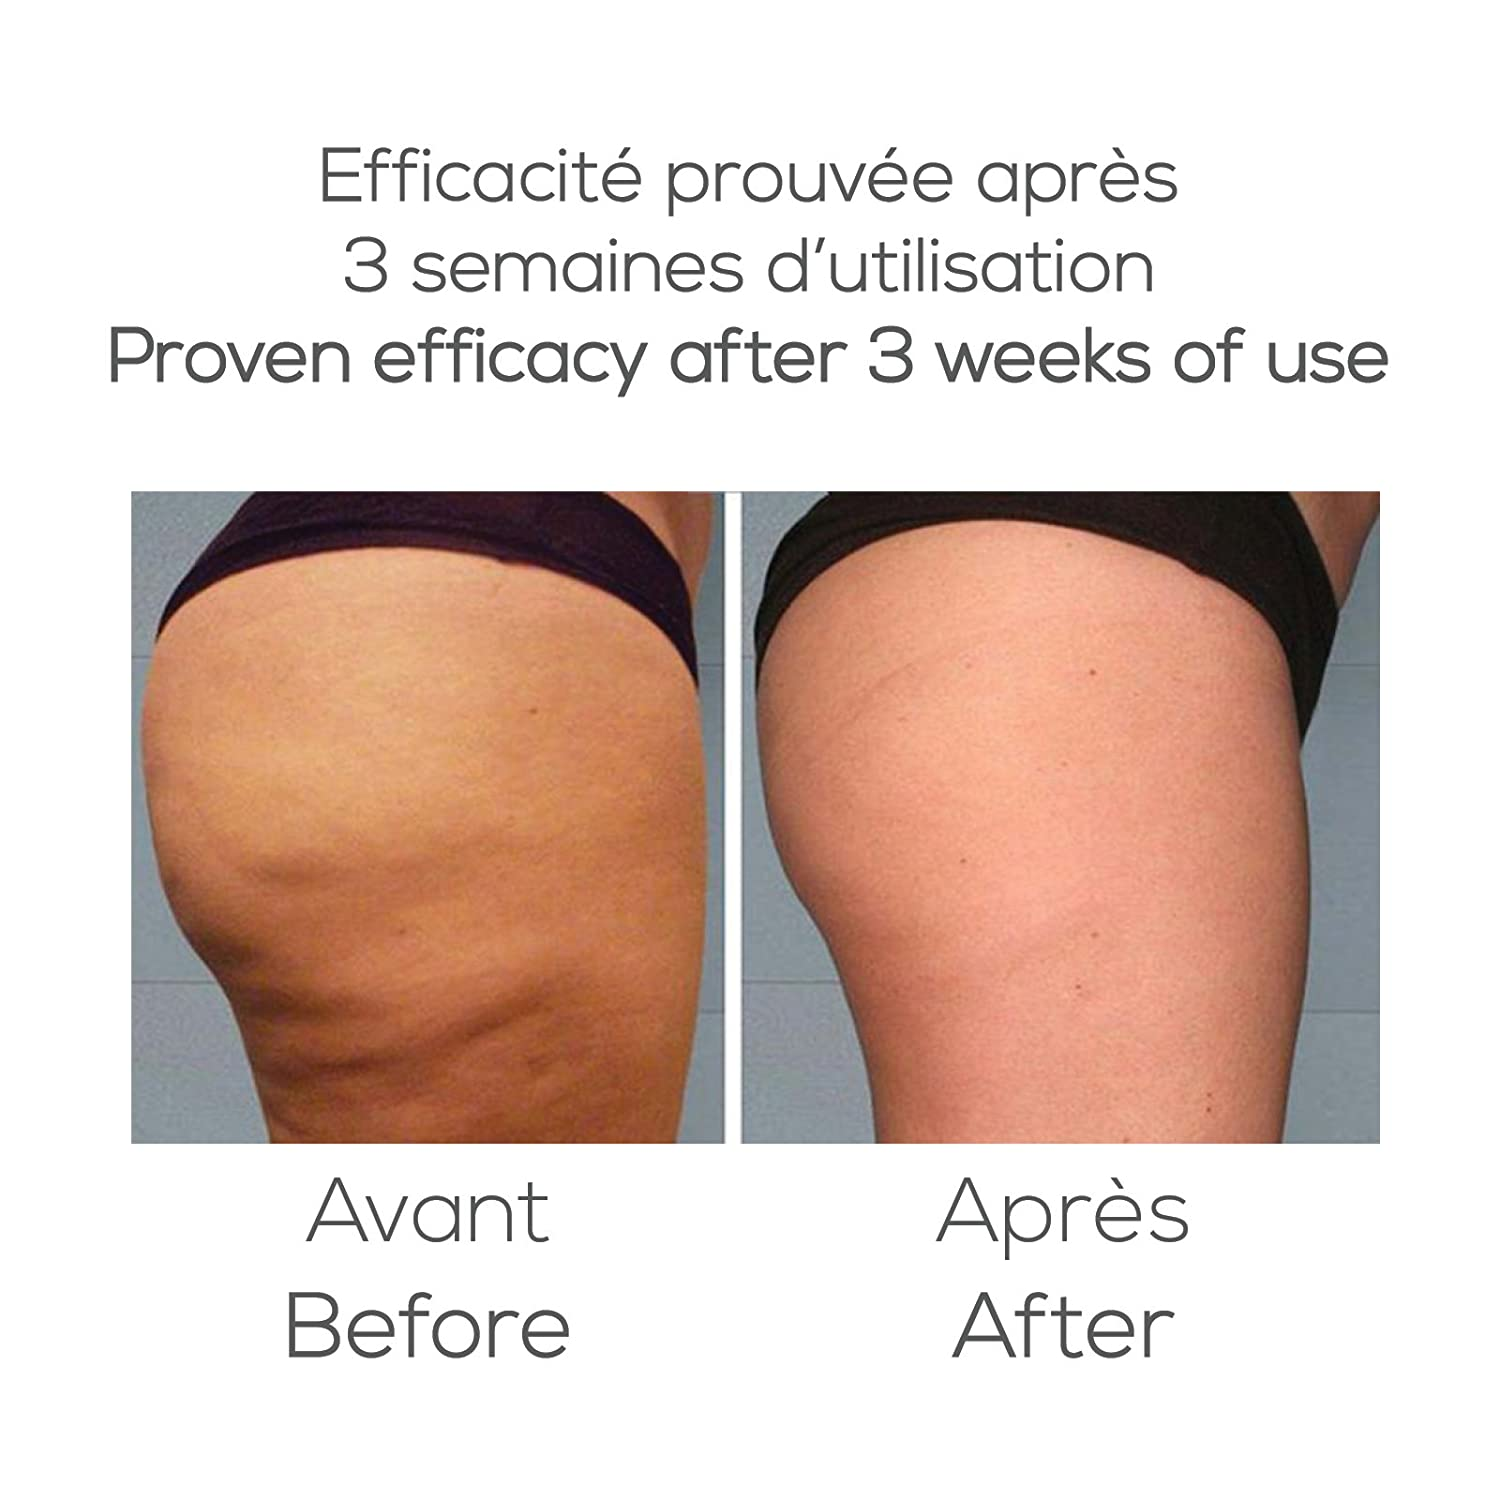 ventouse anti cellulite avant apres